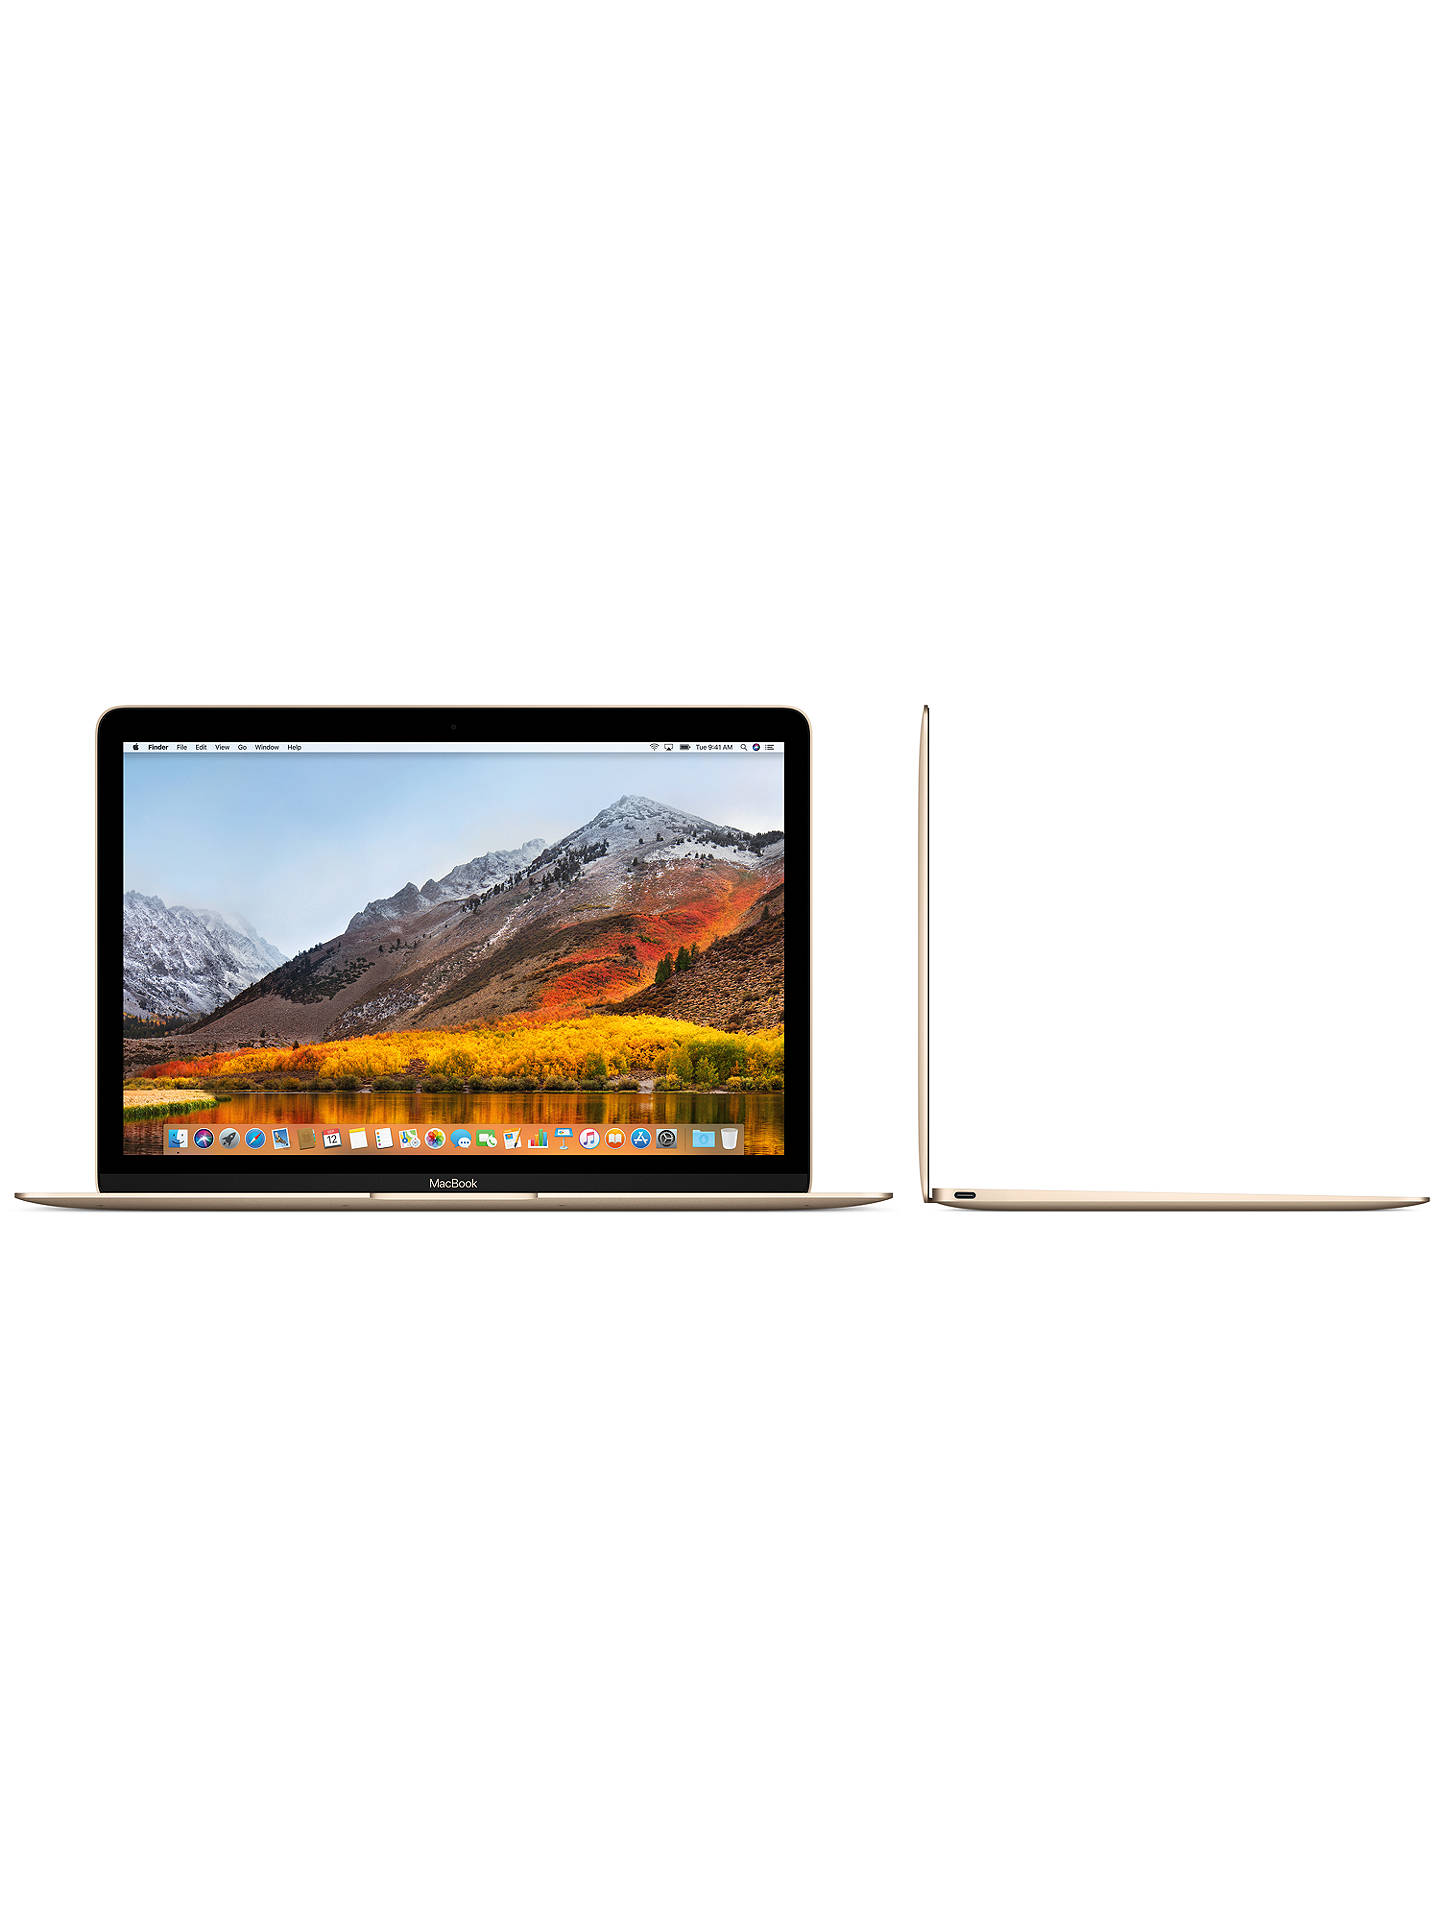 "Buy2017 Apple MacBook 12"", Intel Core m3, 8GB RAM, 256GB SSD, Intel HD Graphics 615, Gold Online at johnlewis.com"